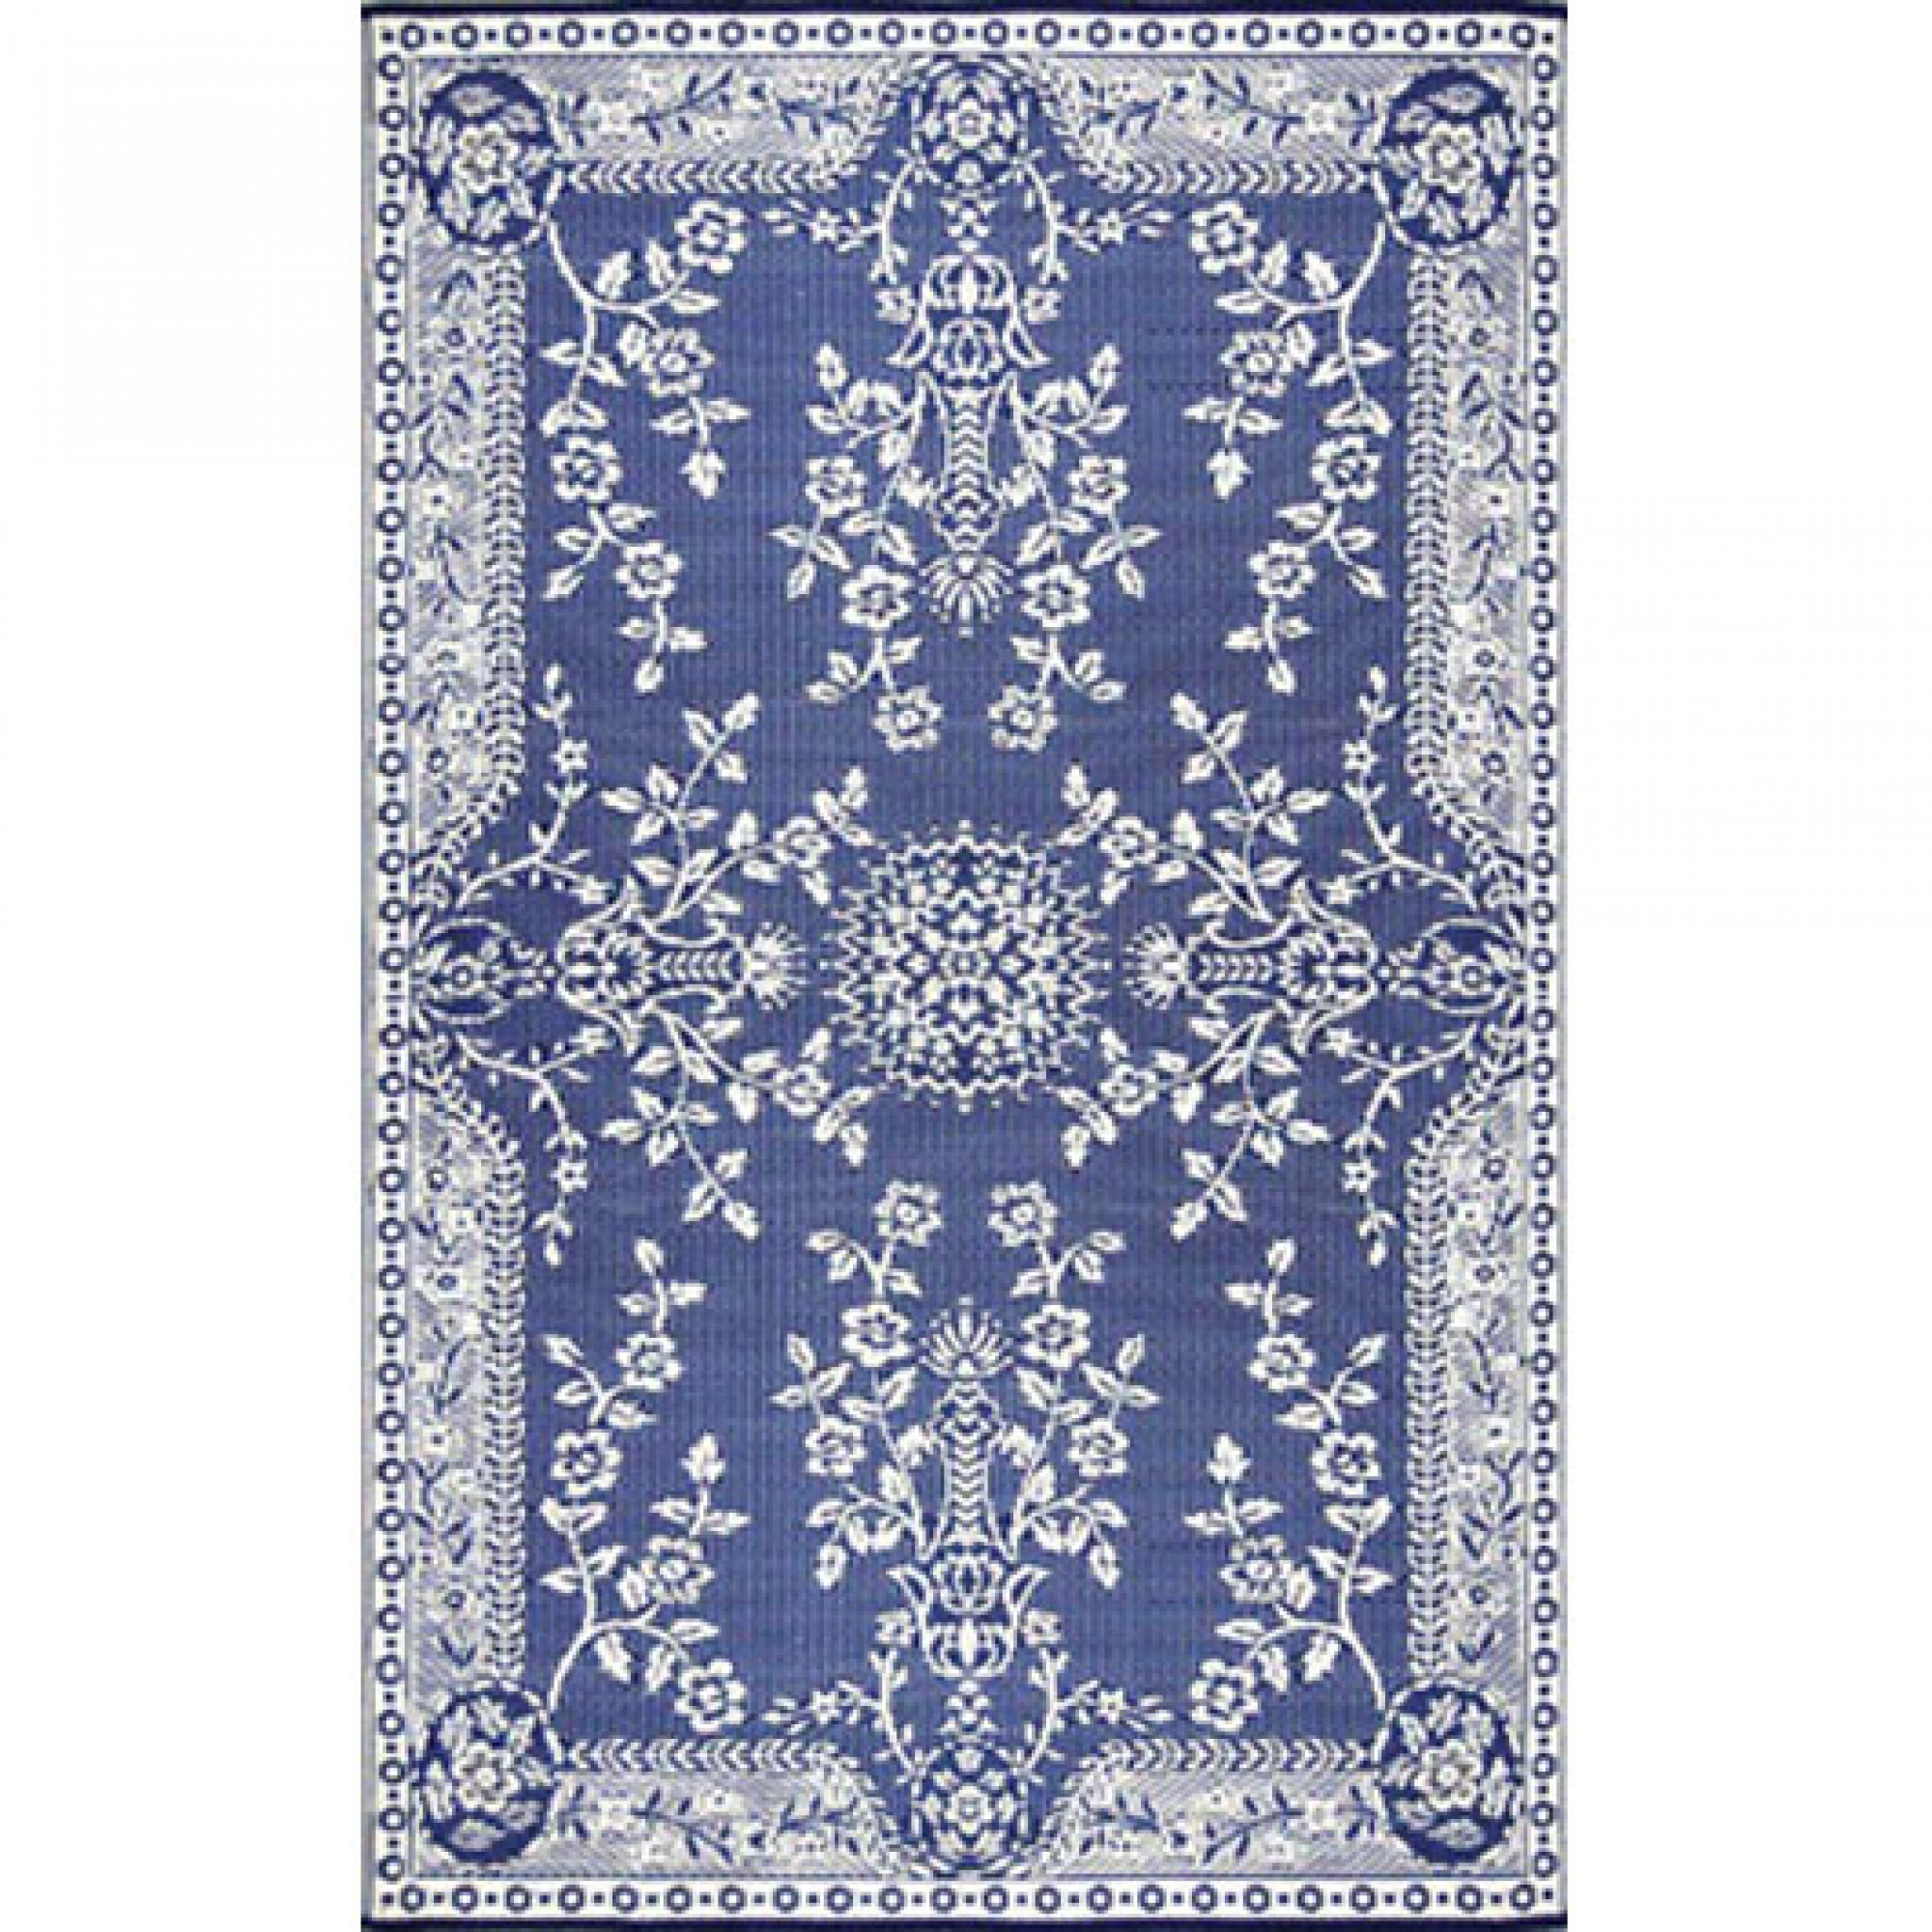 Oriental Garland Blue And White Outdoor Mat 6ft X 9ft